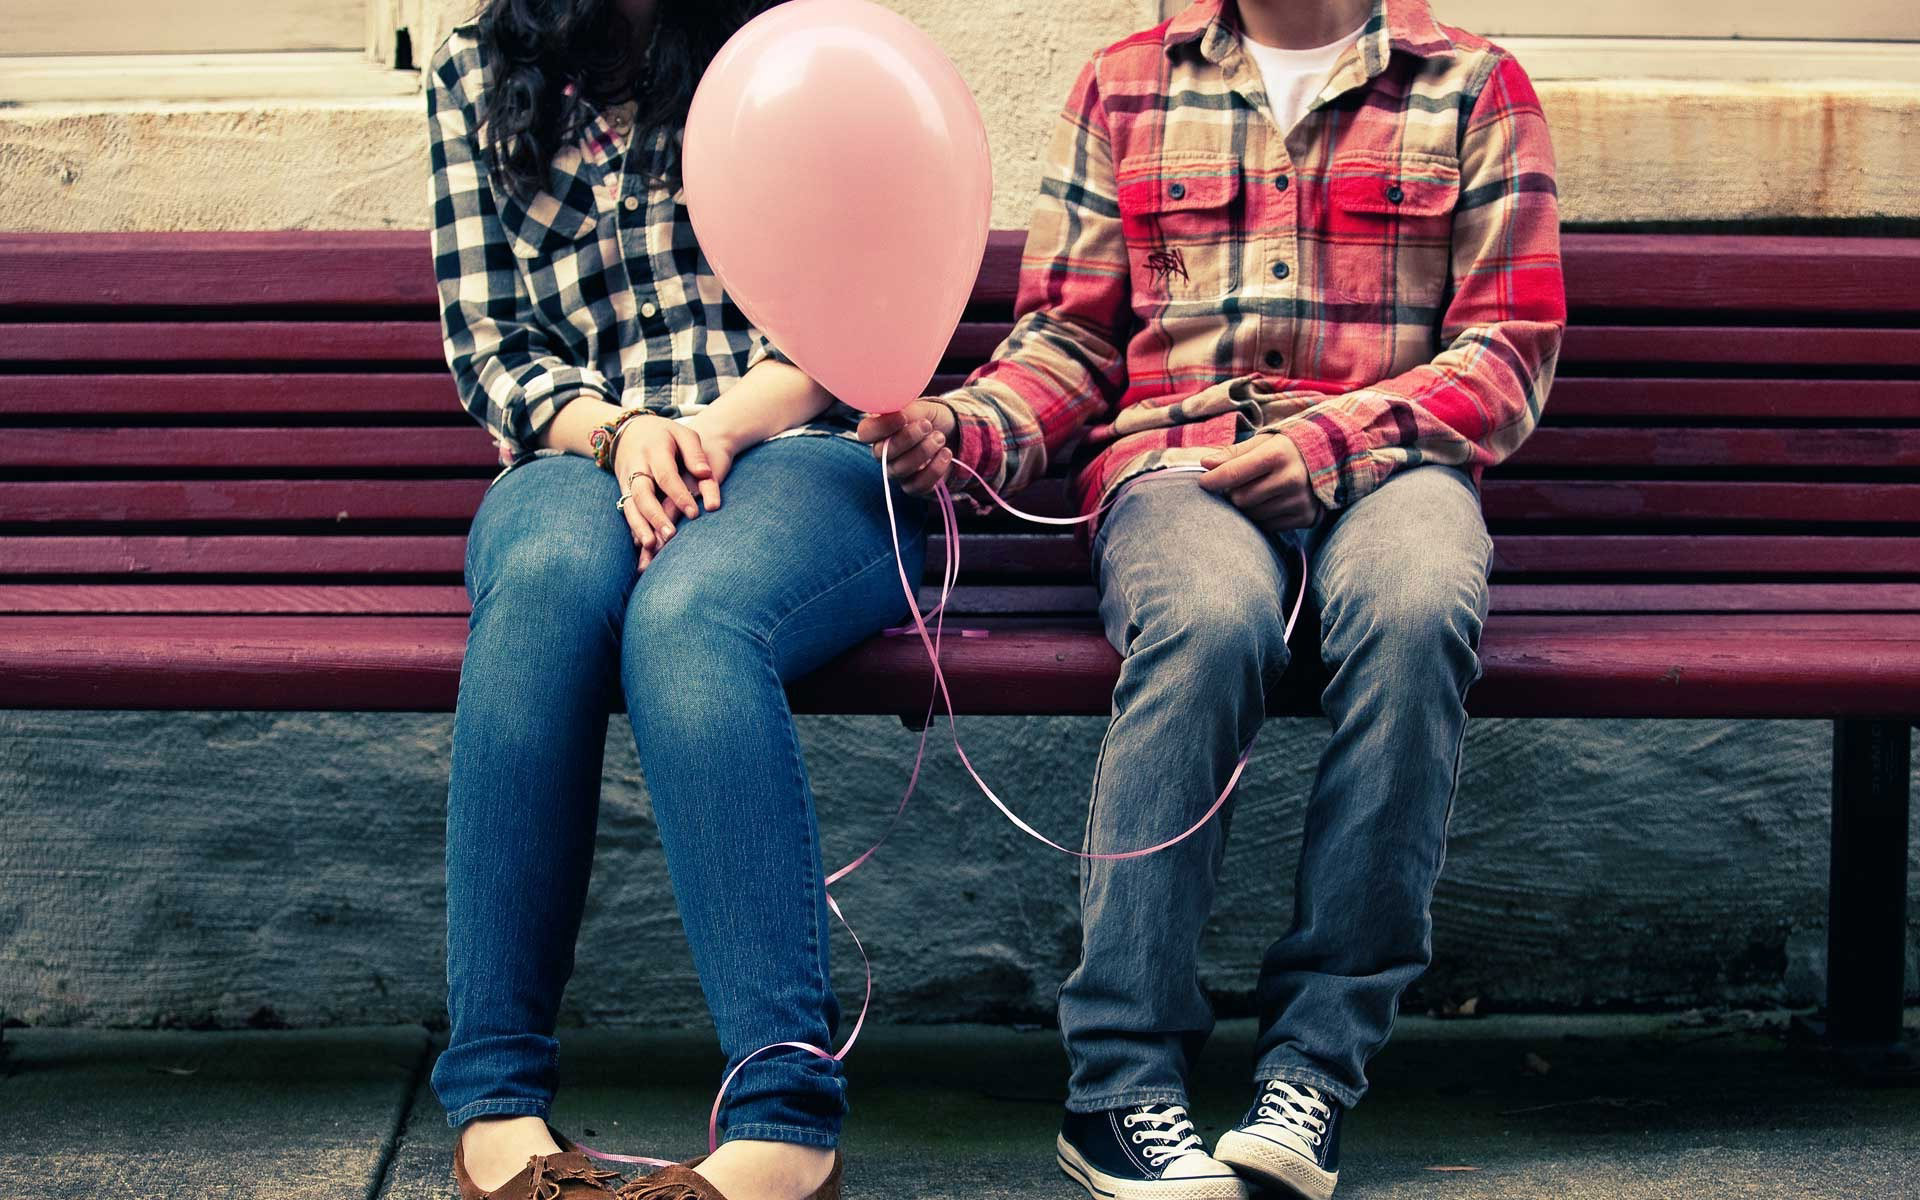 6 Tips for Dating Success: What You Both Want Matters